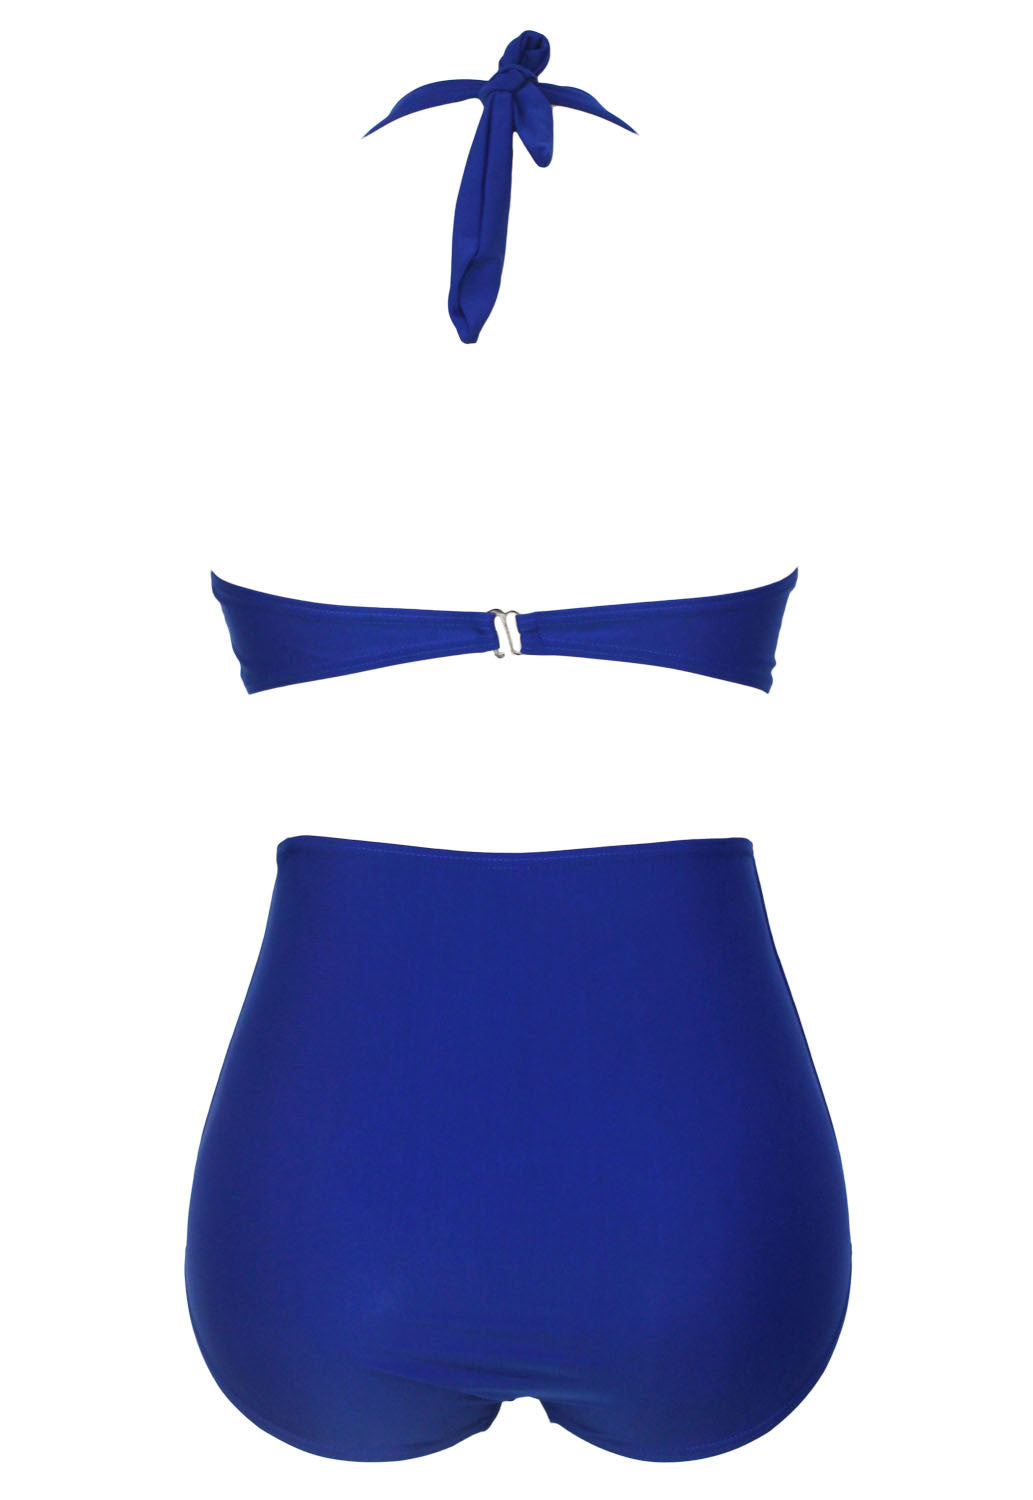 Big'n'Bold Solid Blue High-Waisted Halter Bikini Swimsuit